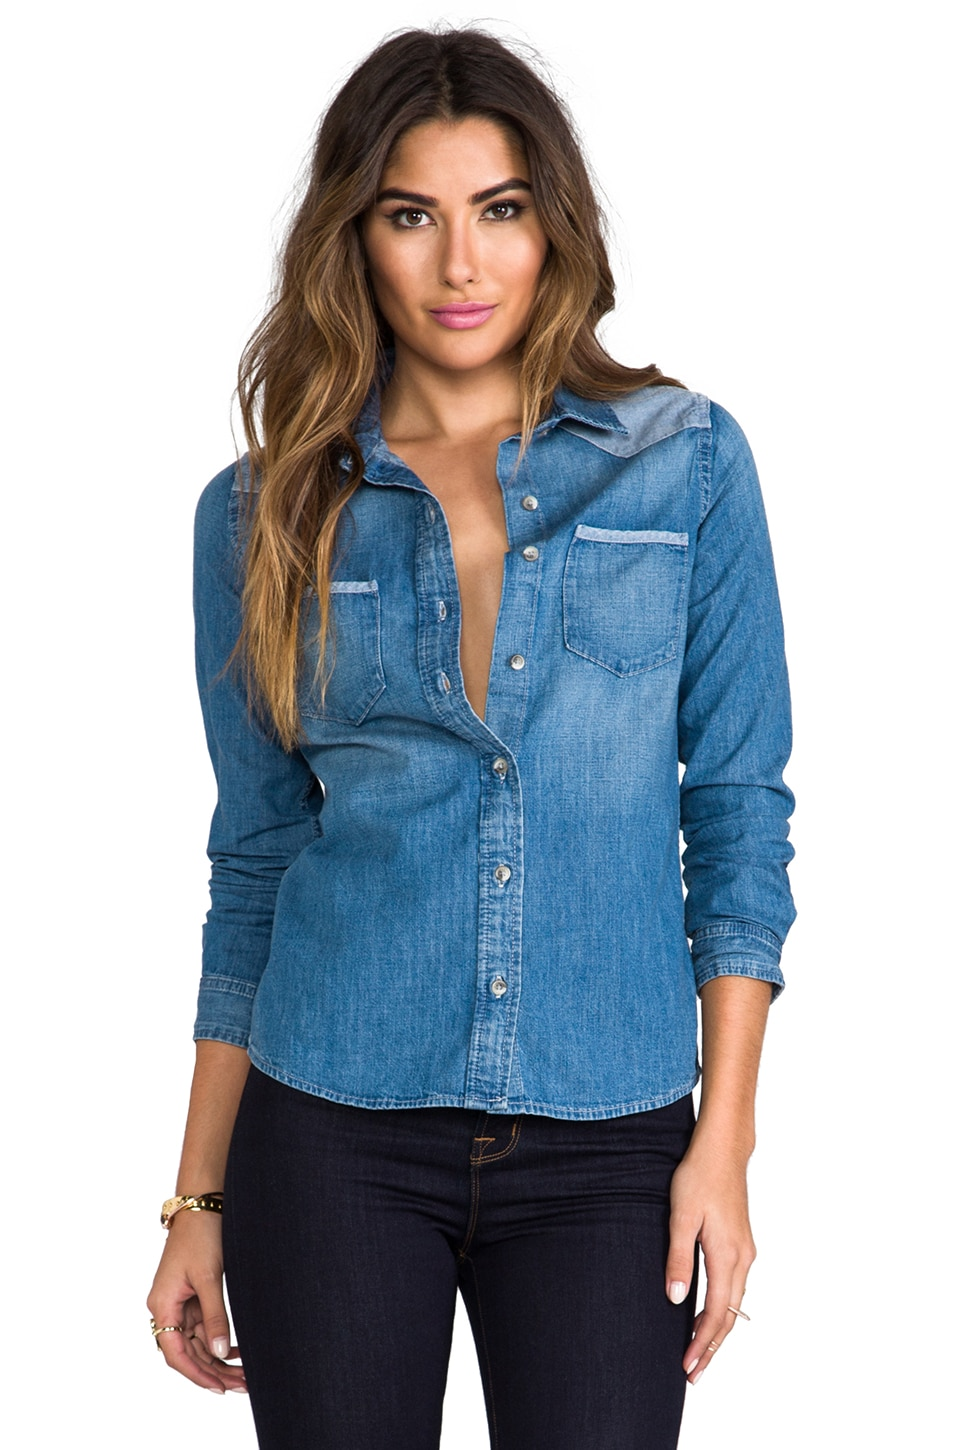 AG Adriano Goldschmied Wesley Denim Chambray Shirt in Tahoe